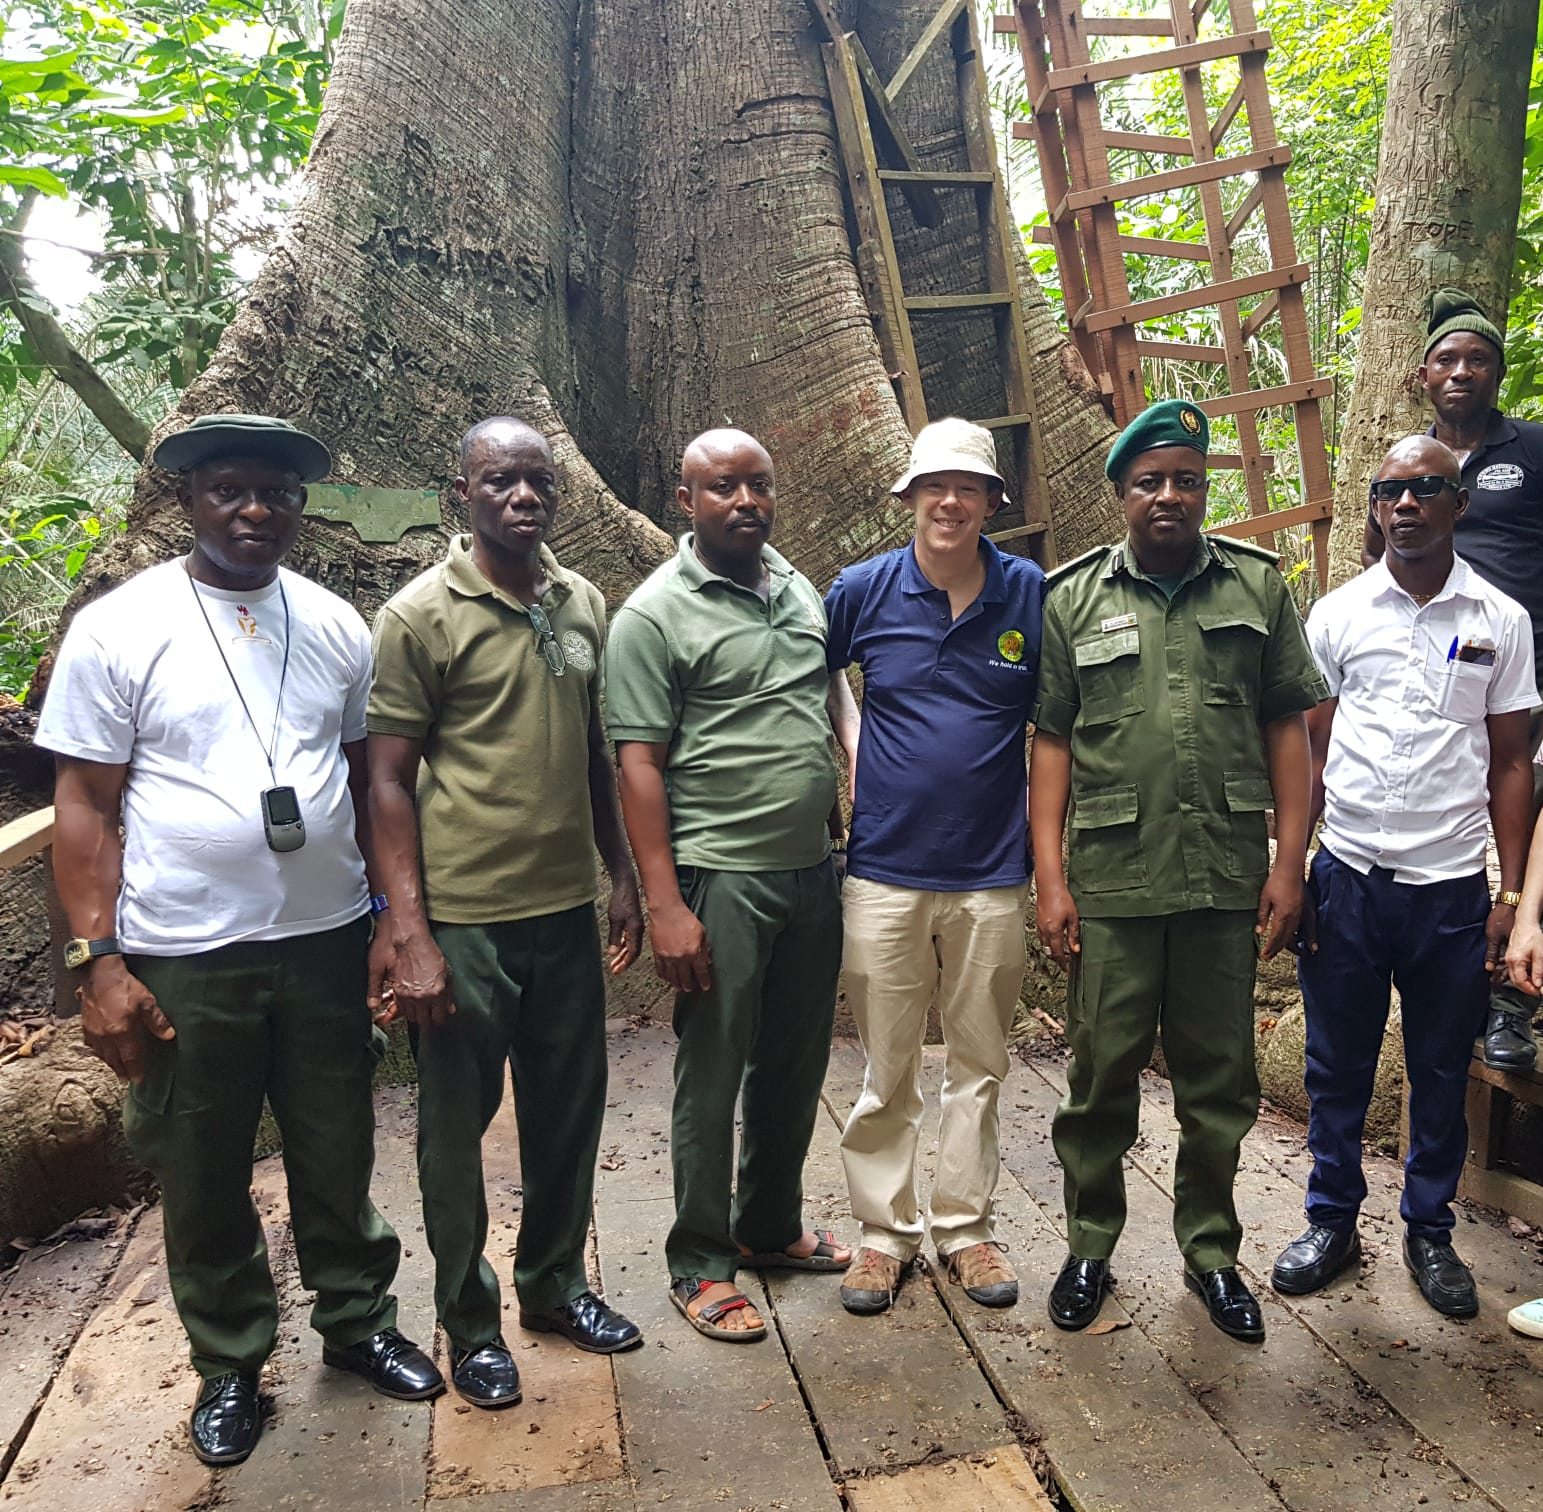 EPI Director of Communications Barnaby Phillips with park rangers. To Barnaby's left, Okomu Park Conservator Ahmed Abdullahi